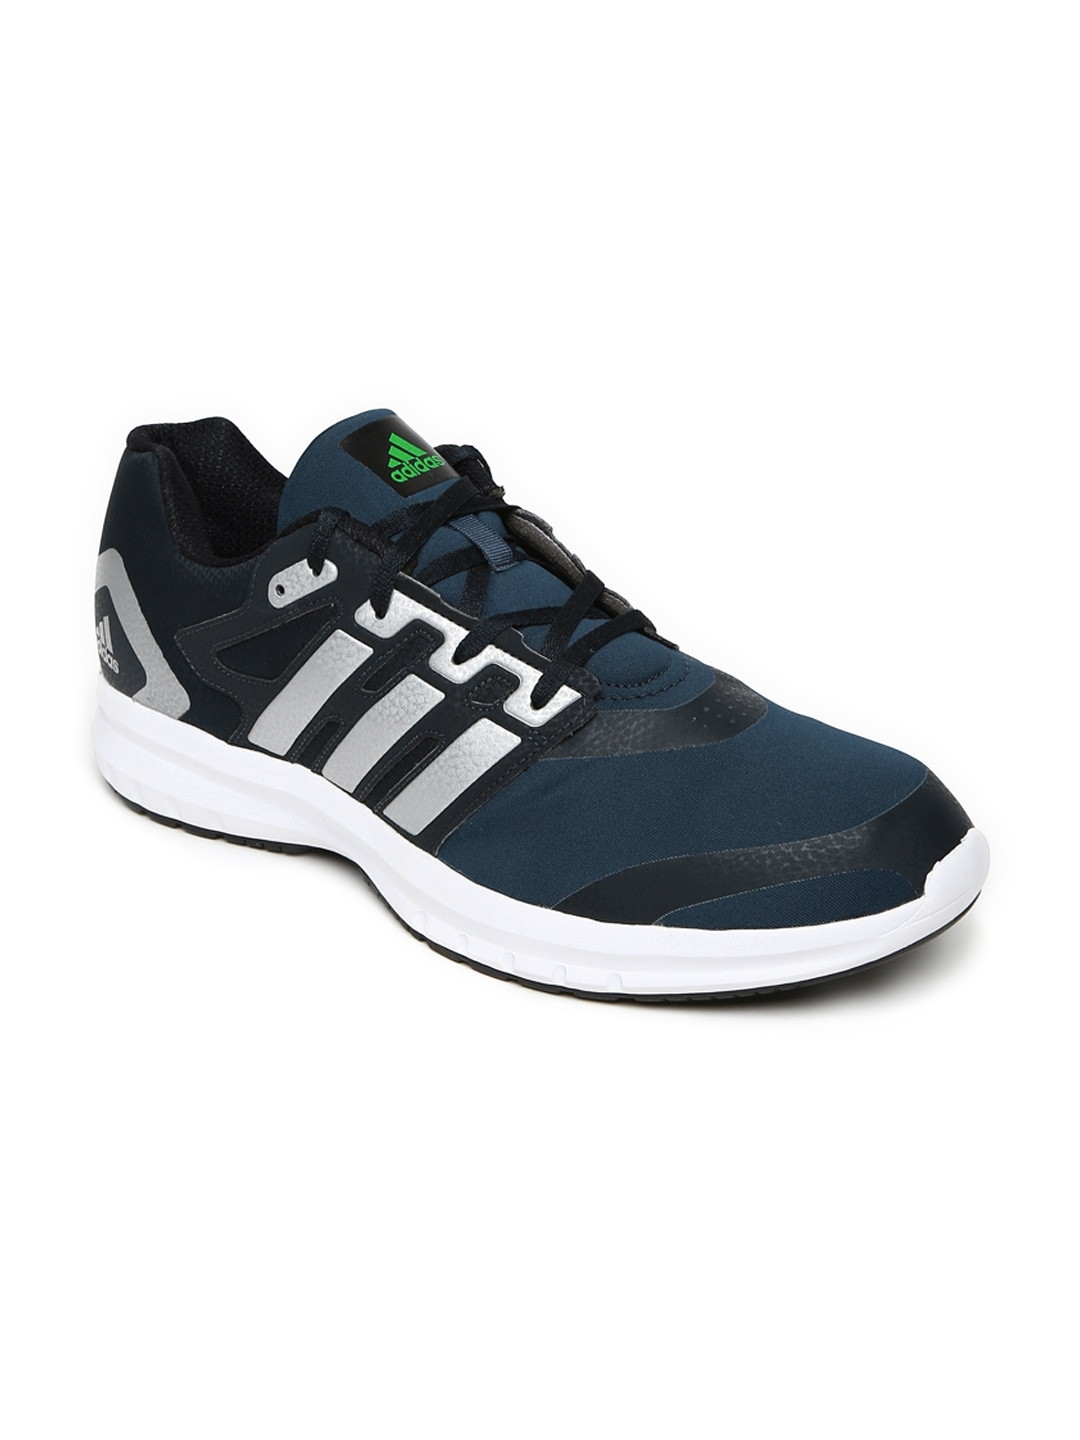 bkpef Adidas Shoes - Buy Adidas Shoes Online for Men & Women - Myntra